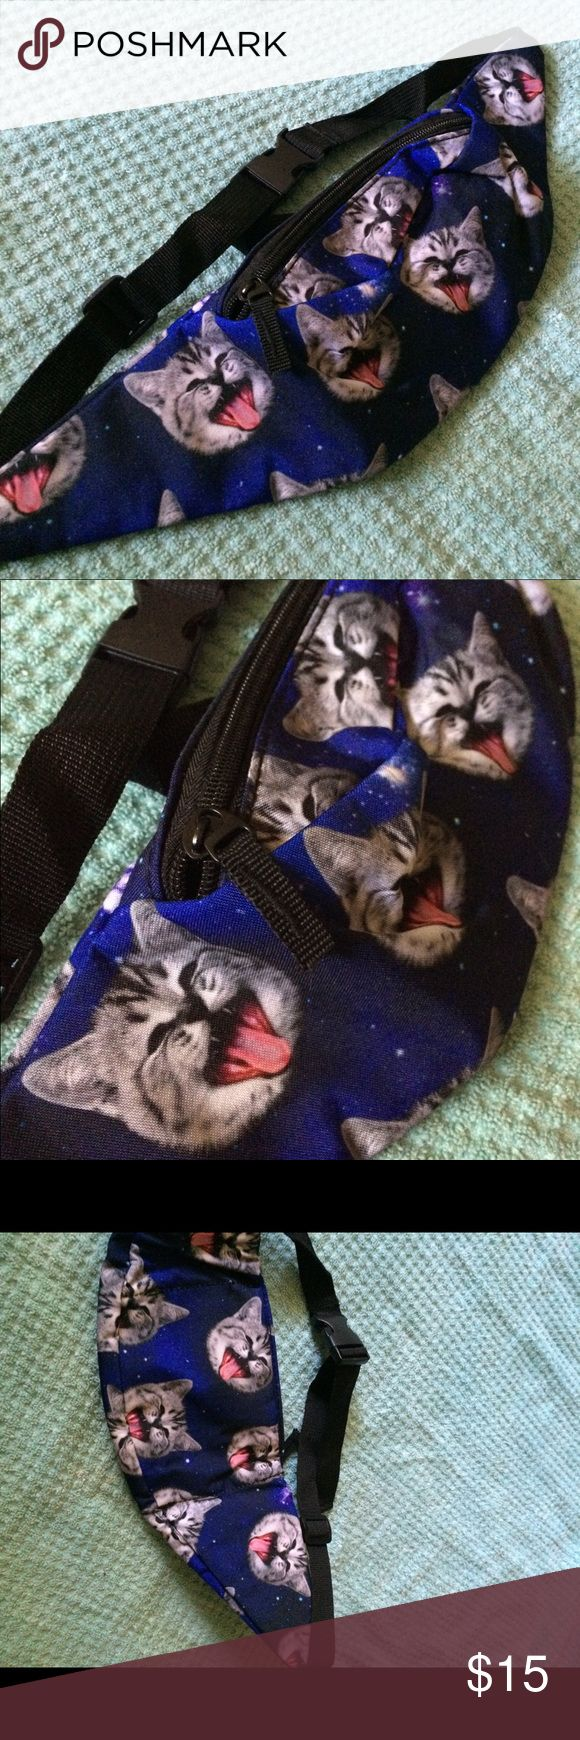 Space Kitty festival fanny pack! 🆕💕😻💫 Super cute and brand new! Perfect for festival season ;-) Urban Outfitters Bags Mini Bags